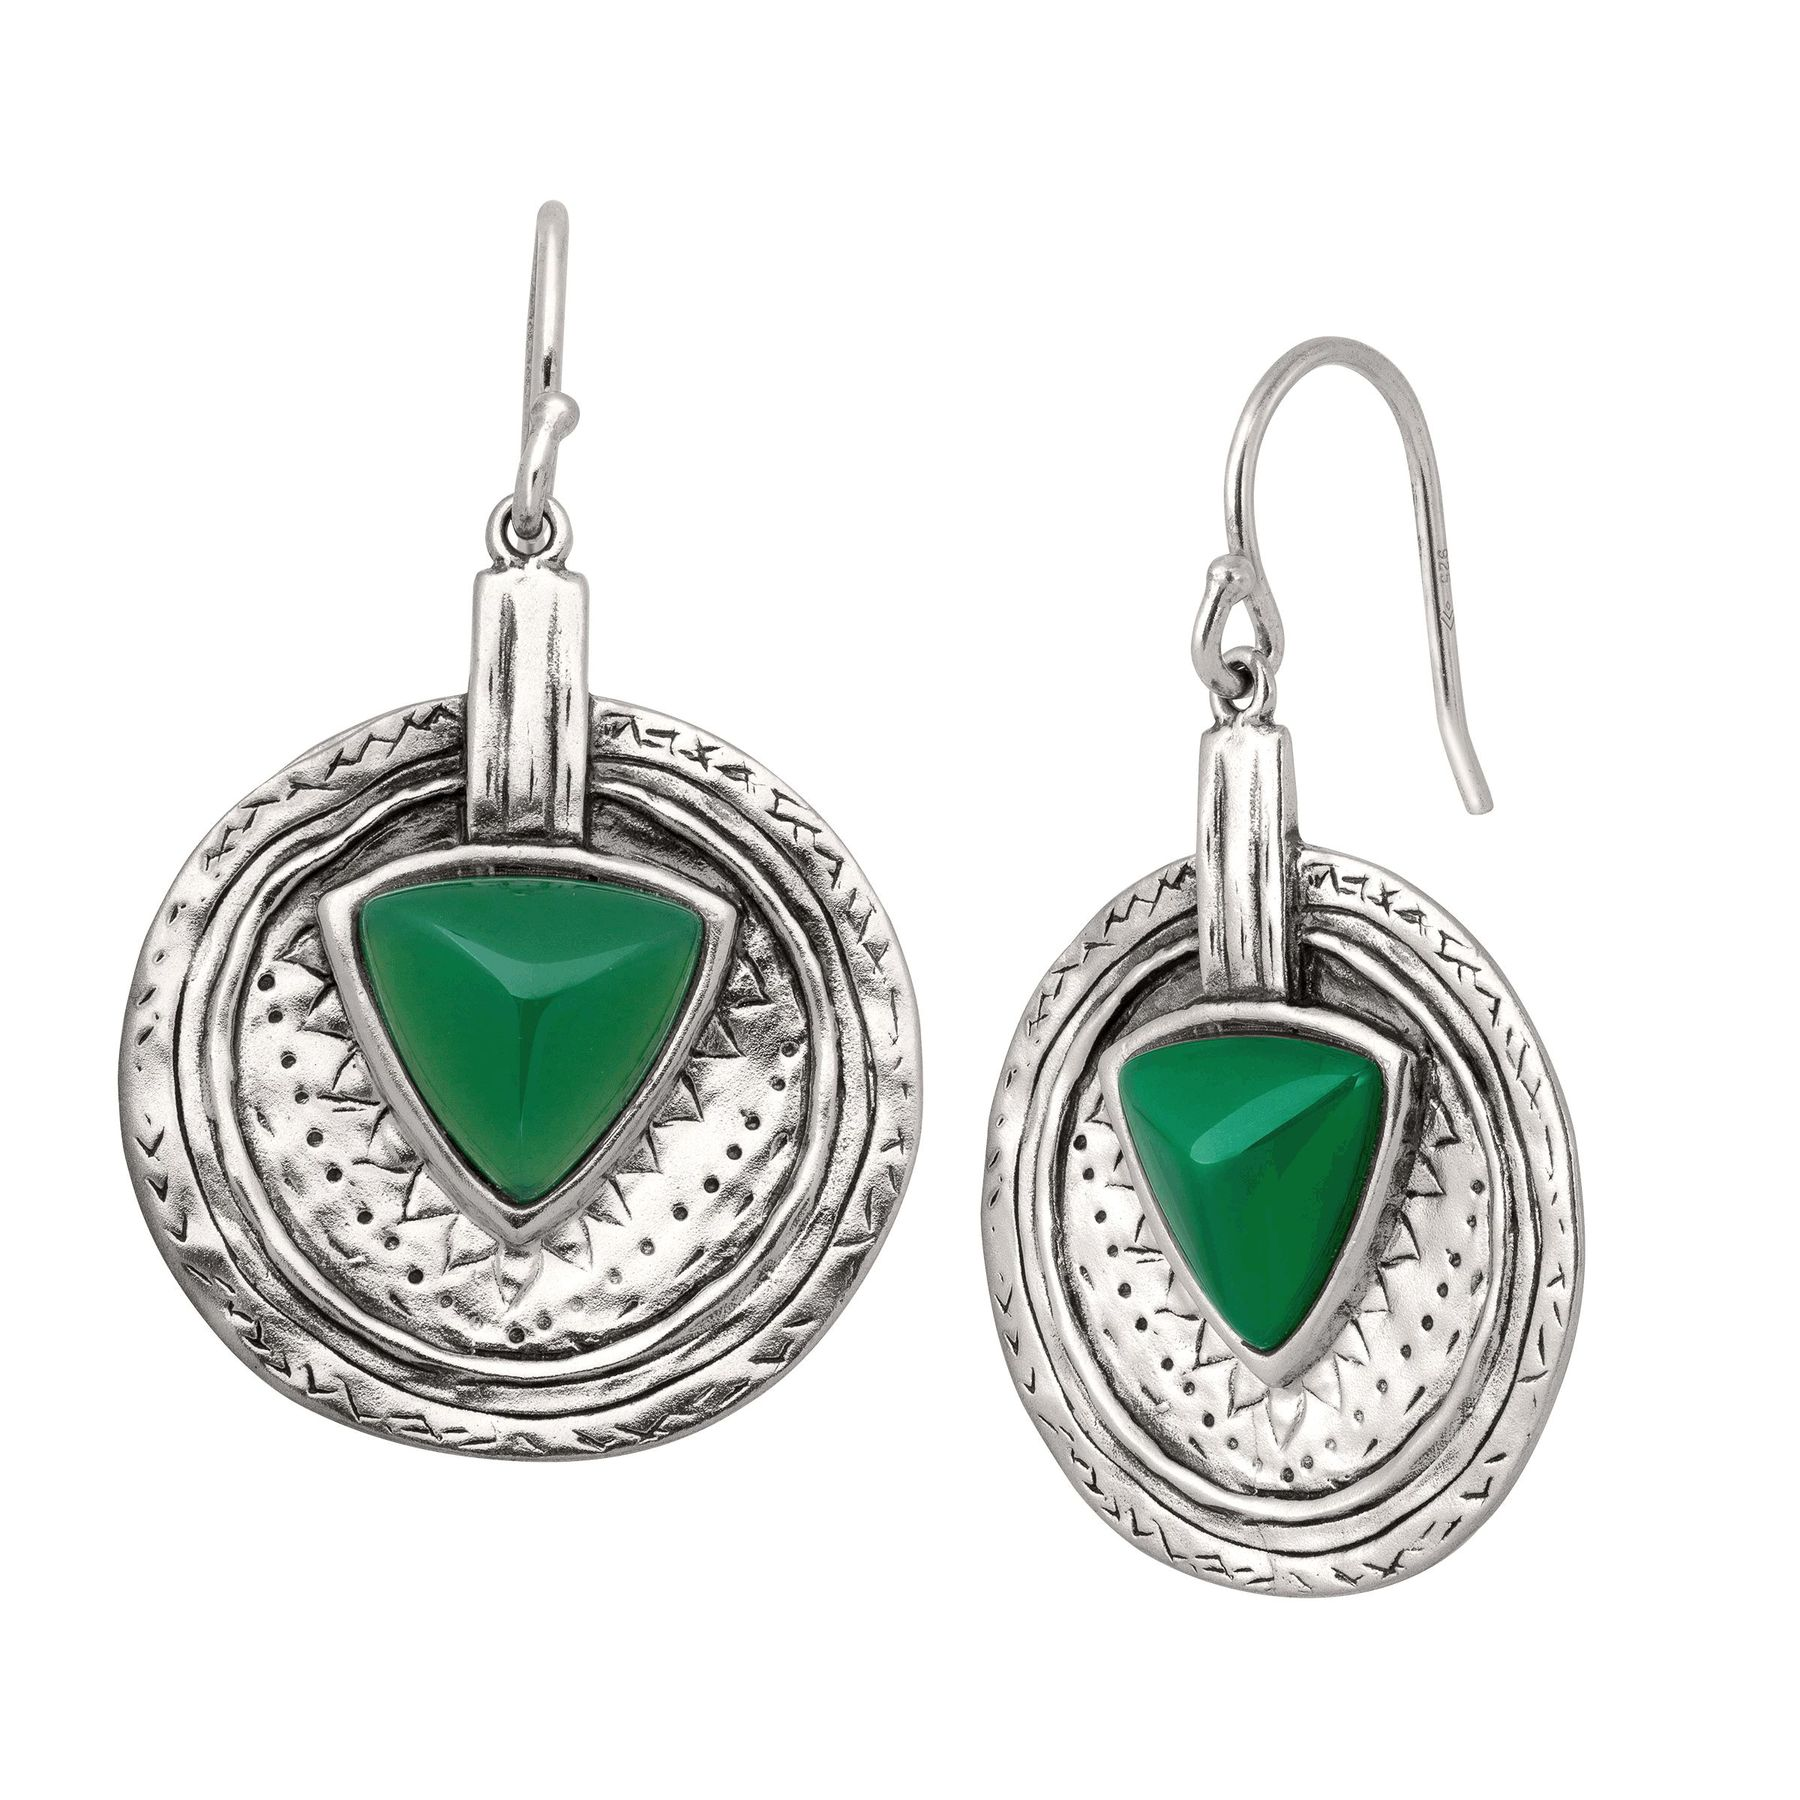 Silpada Emerald Isle Natural Green Agate Drop Earrings In Sterling Silver